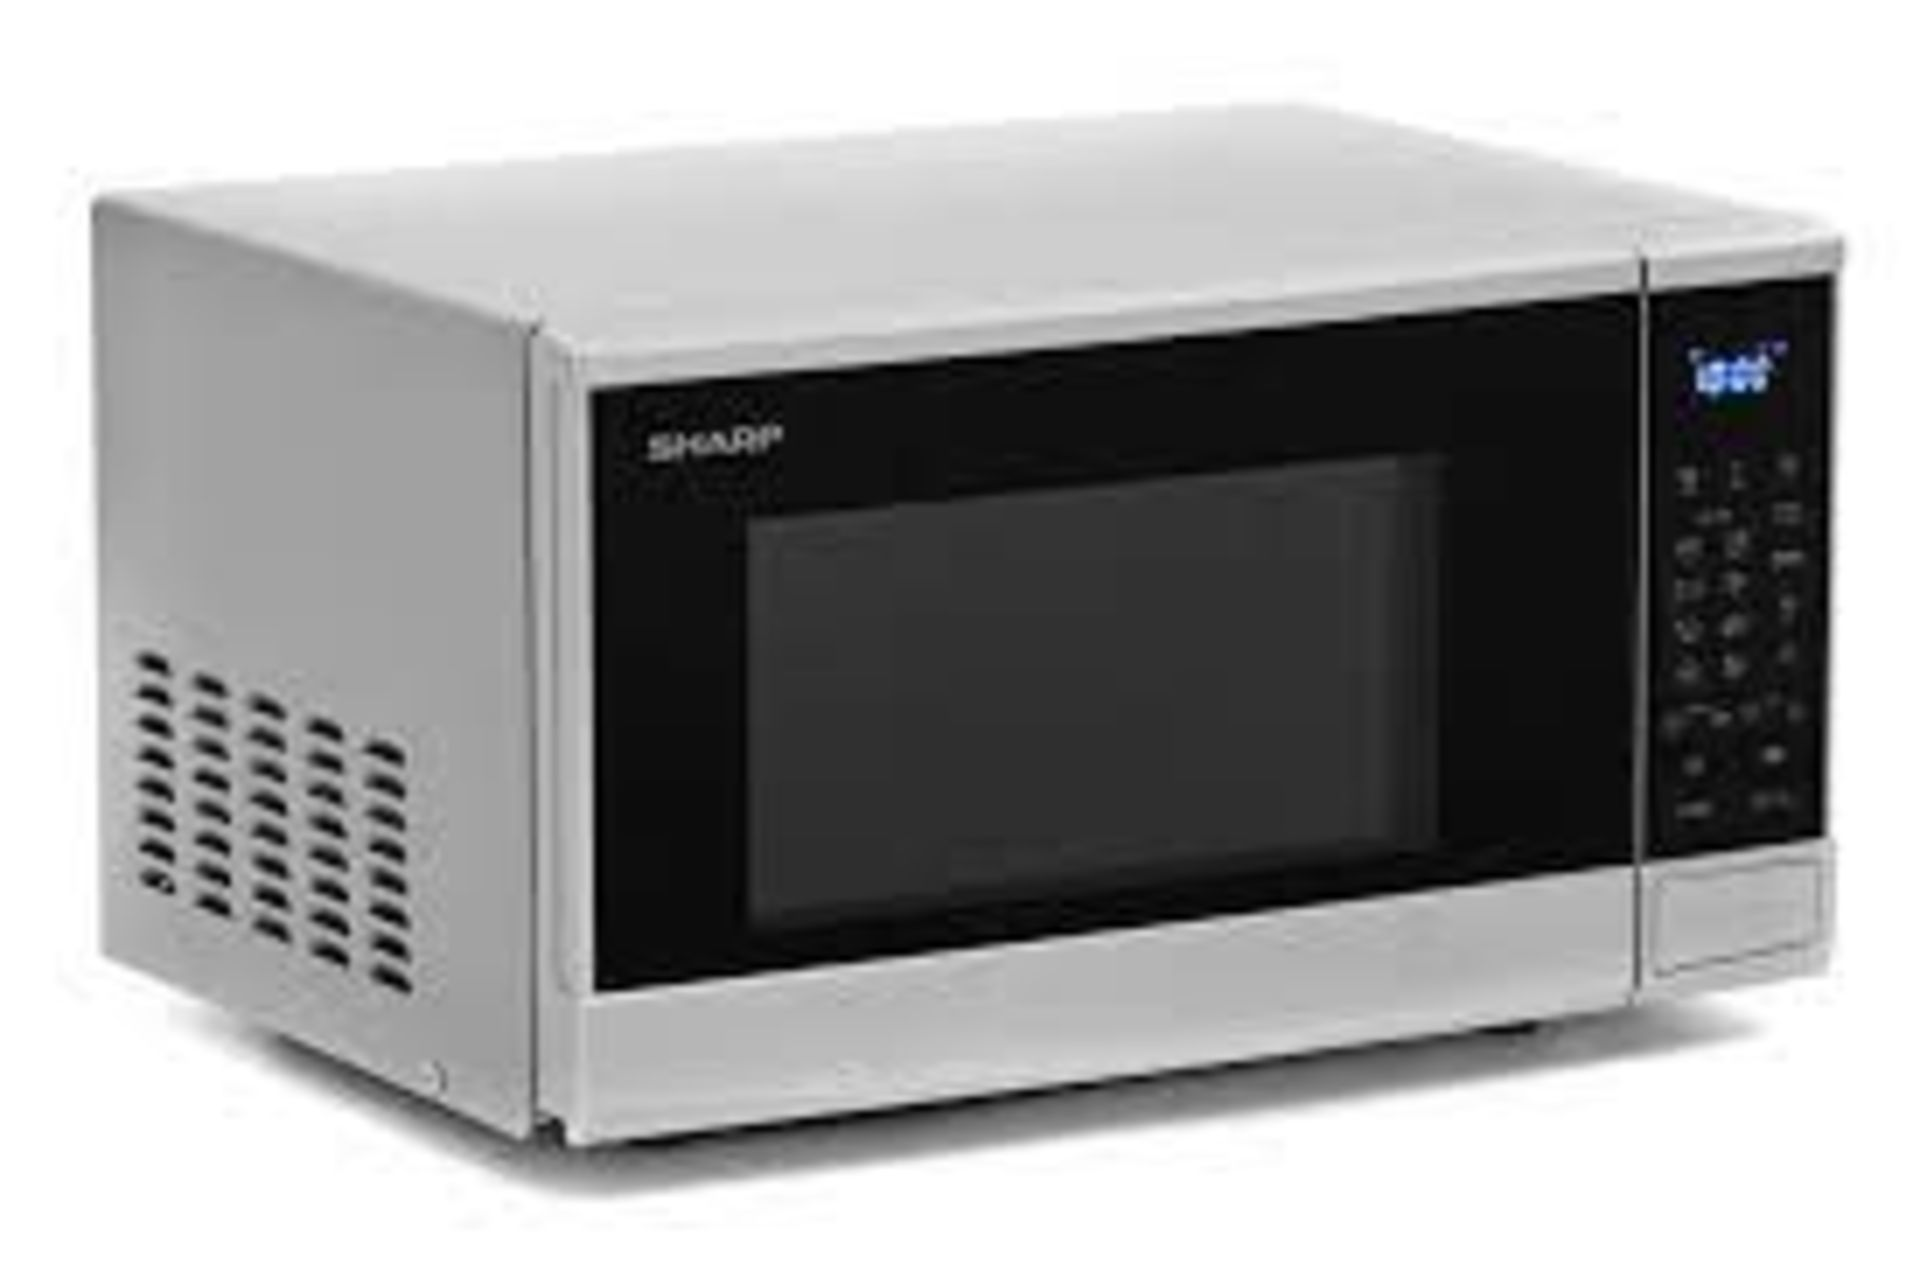 (15) 1x Sharp Microwave Oven Silver RRP £80. 800W, 20L, Weight / Time Defrost, Child Lock & Kitchen - Image 2 of 10